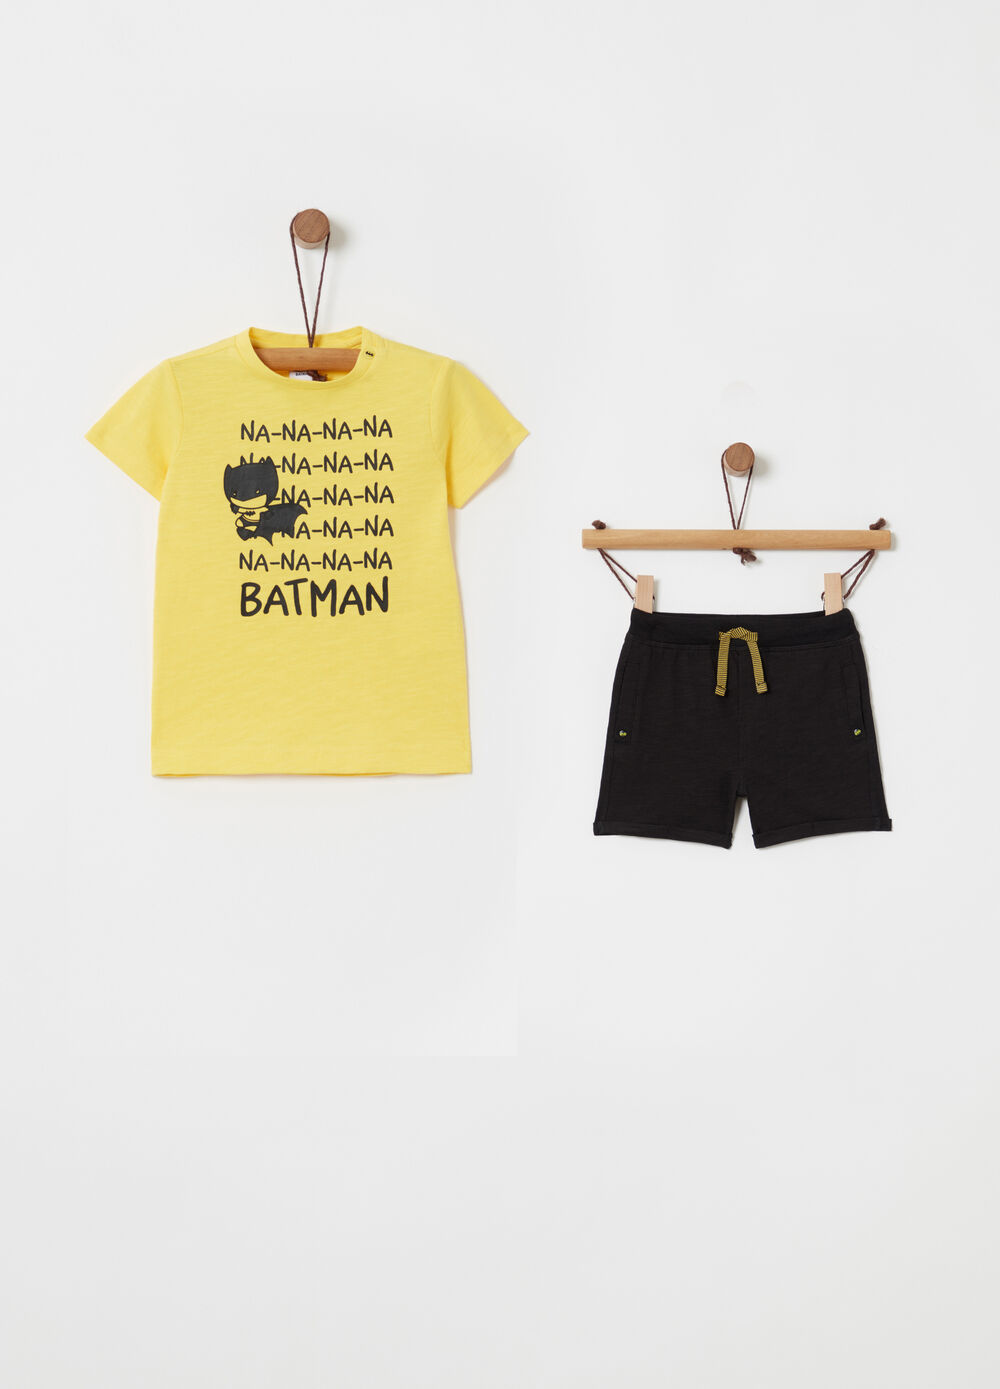 Batman jogging set with T-shirt and trousers